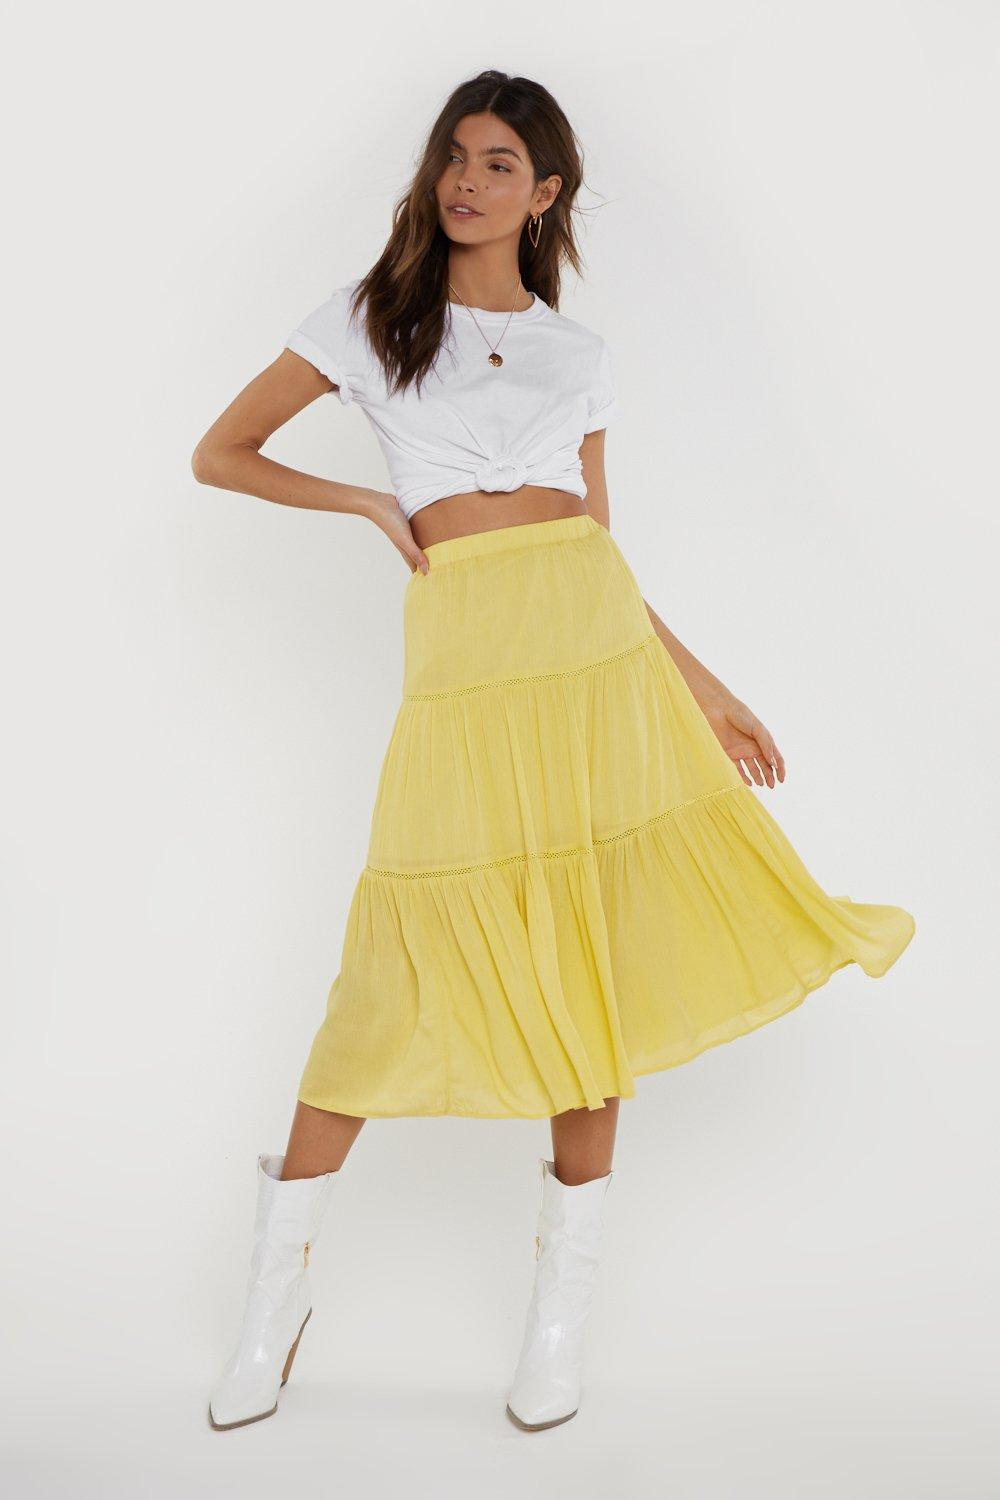 2bcaeaafe7b8 High Waisted Midi Skirt – DACC